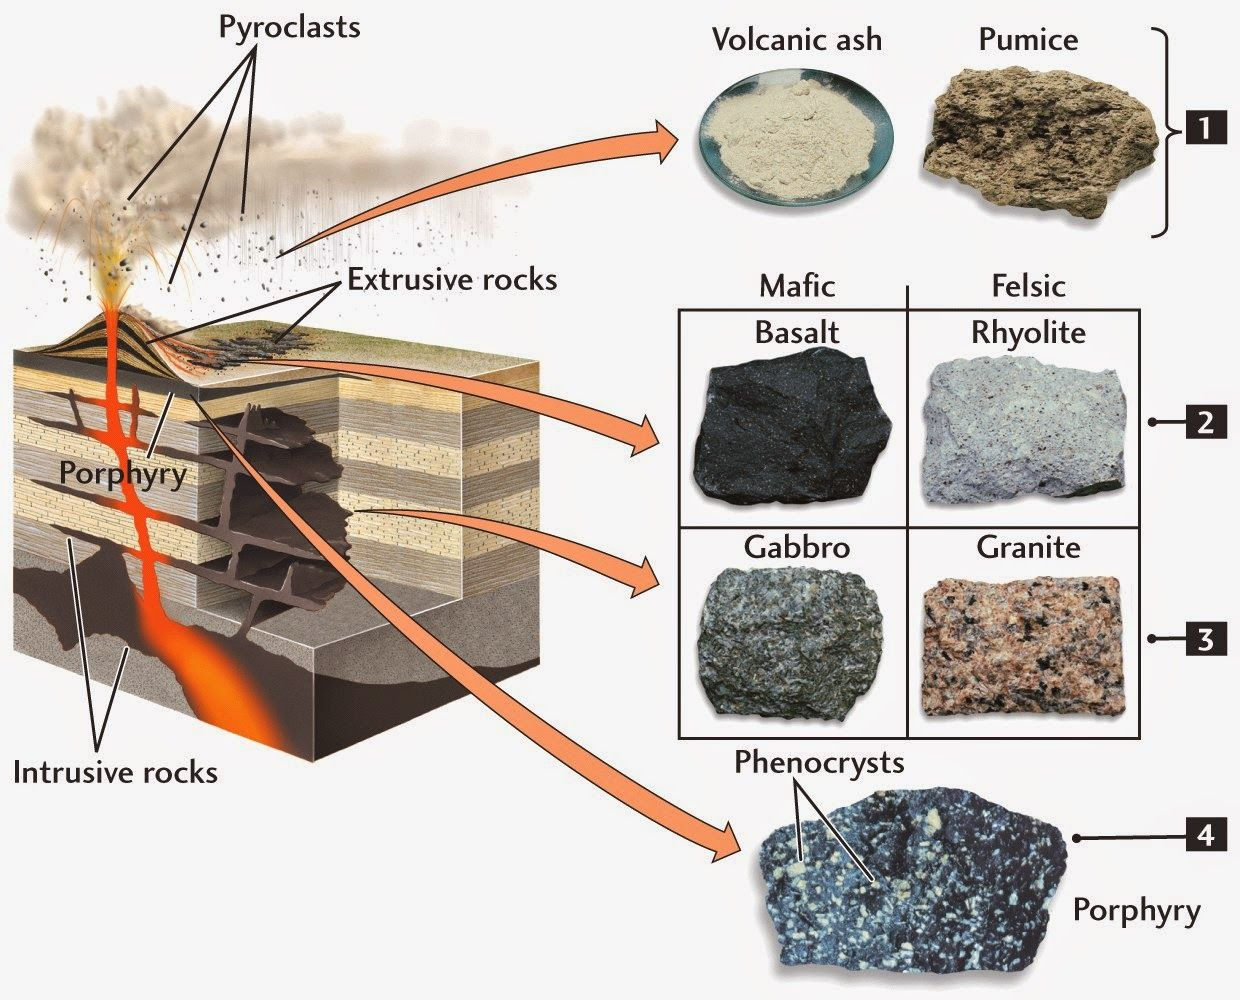 Rock cycle worksheets for 6th graders - Good Information Here And On Website Amazing Geology Texture Of Igneous Rocks